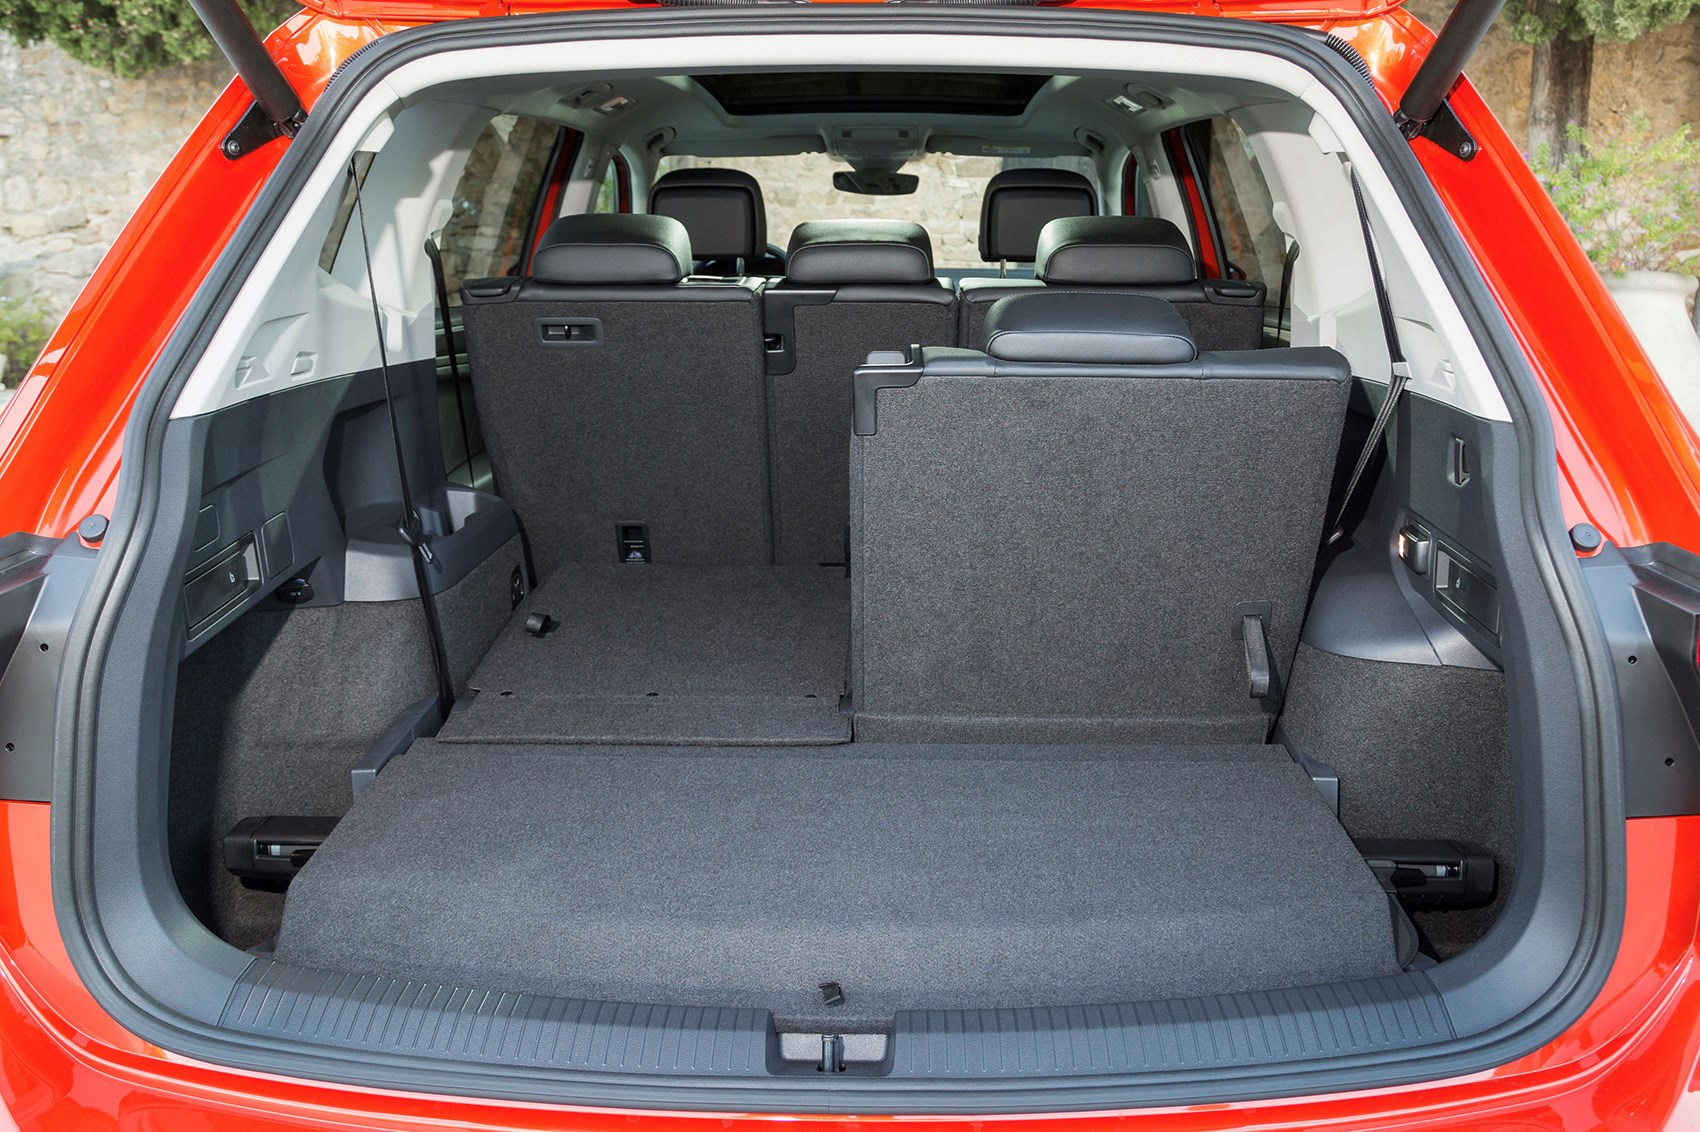 Vw tiguan allspace review buying and selling parkers vw tiguan allspace boot fandeluxe Gallery